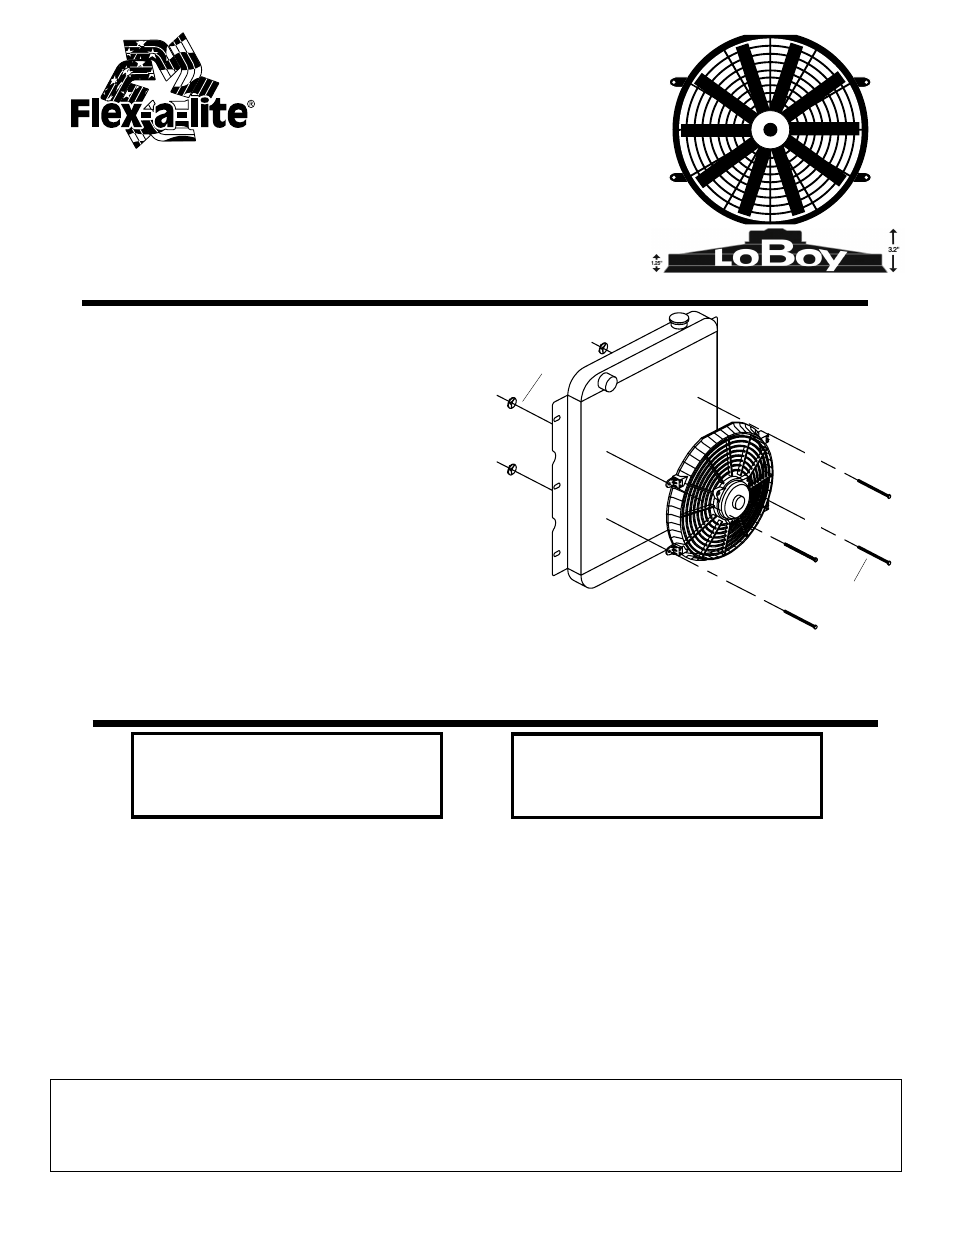 hight resolution of flex a lite 119 pusher loboy electric fan user manual 1 page flex a lite fan controller wiring diagram flex fan wiring